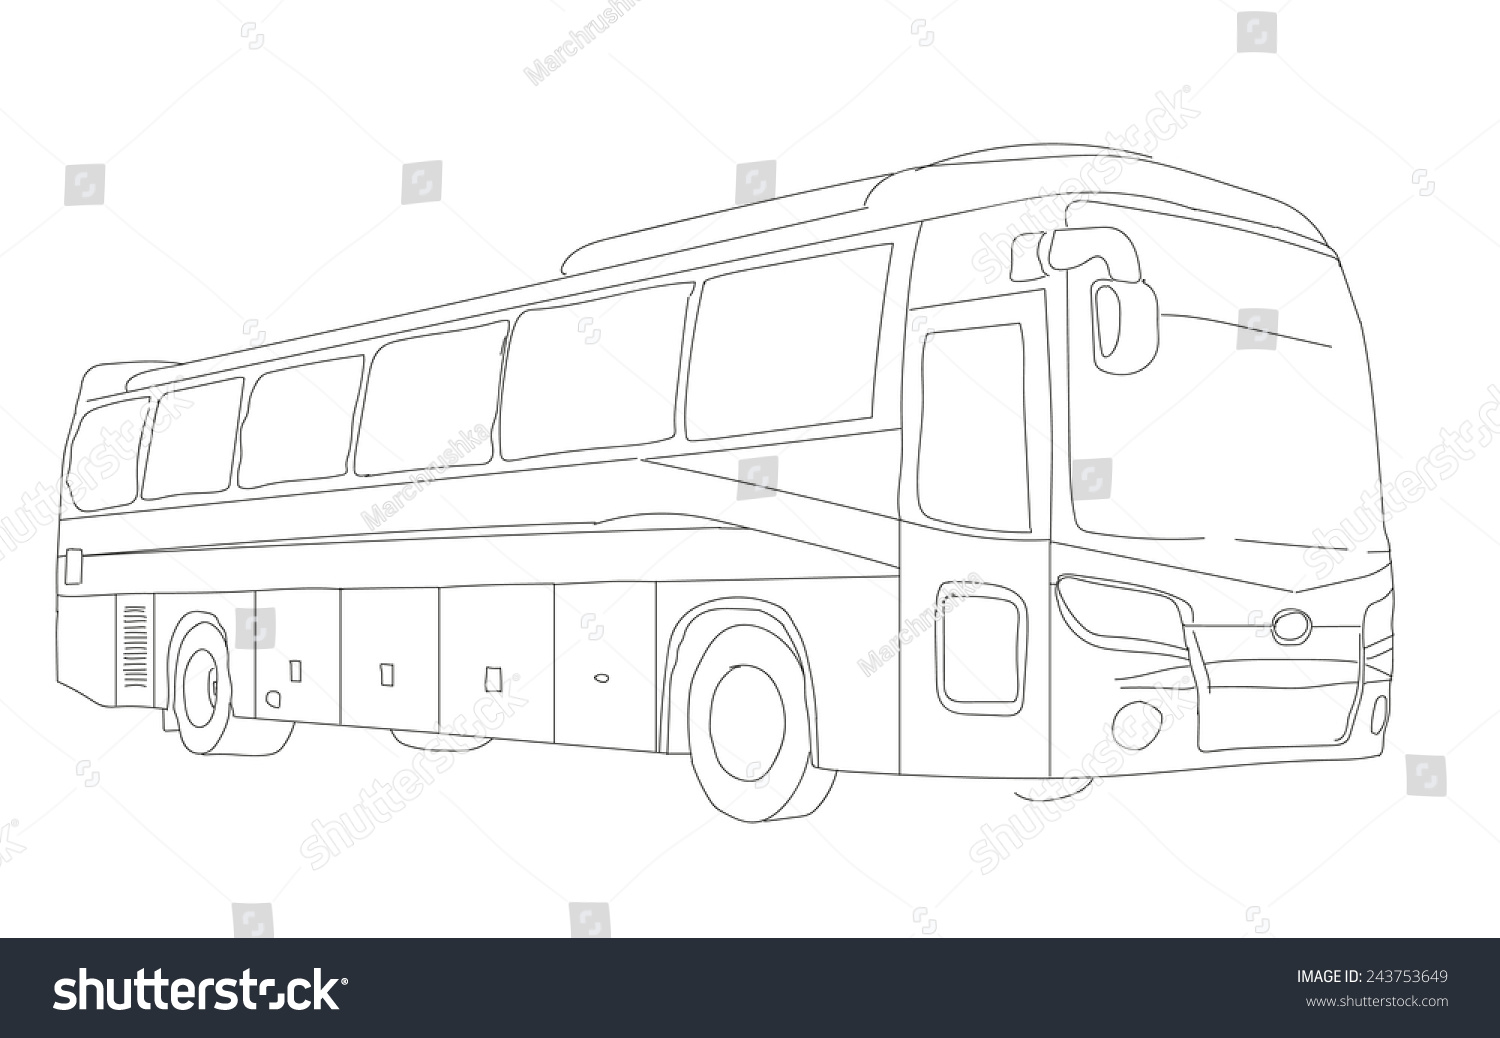 Bus sketch pencil drawing style